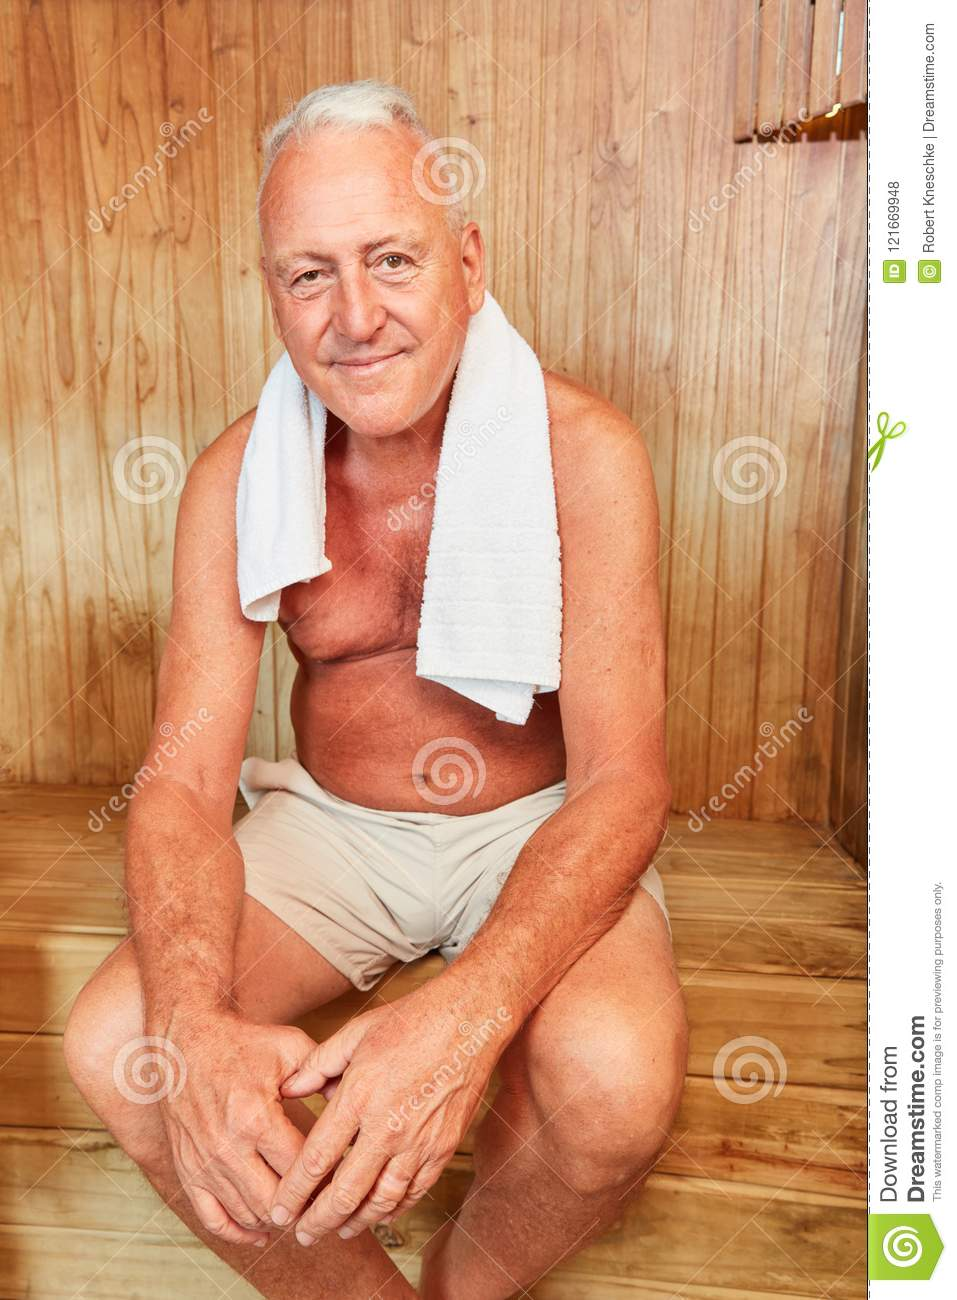 Senior man sits relaxed in the sauna